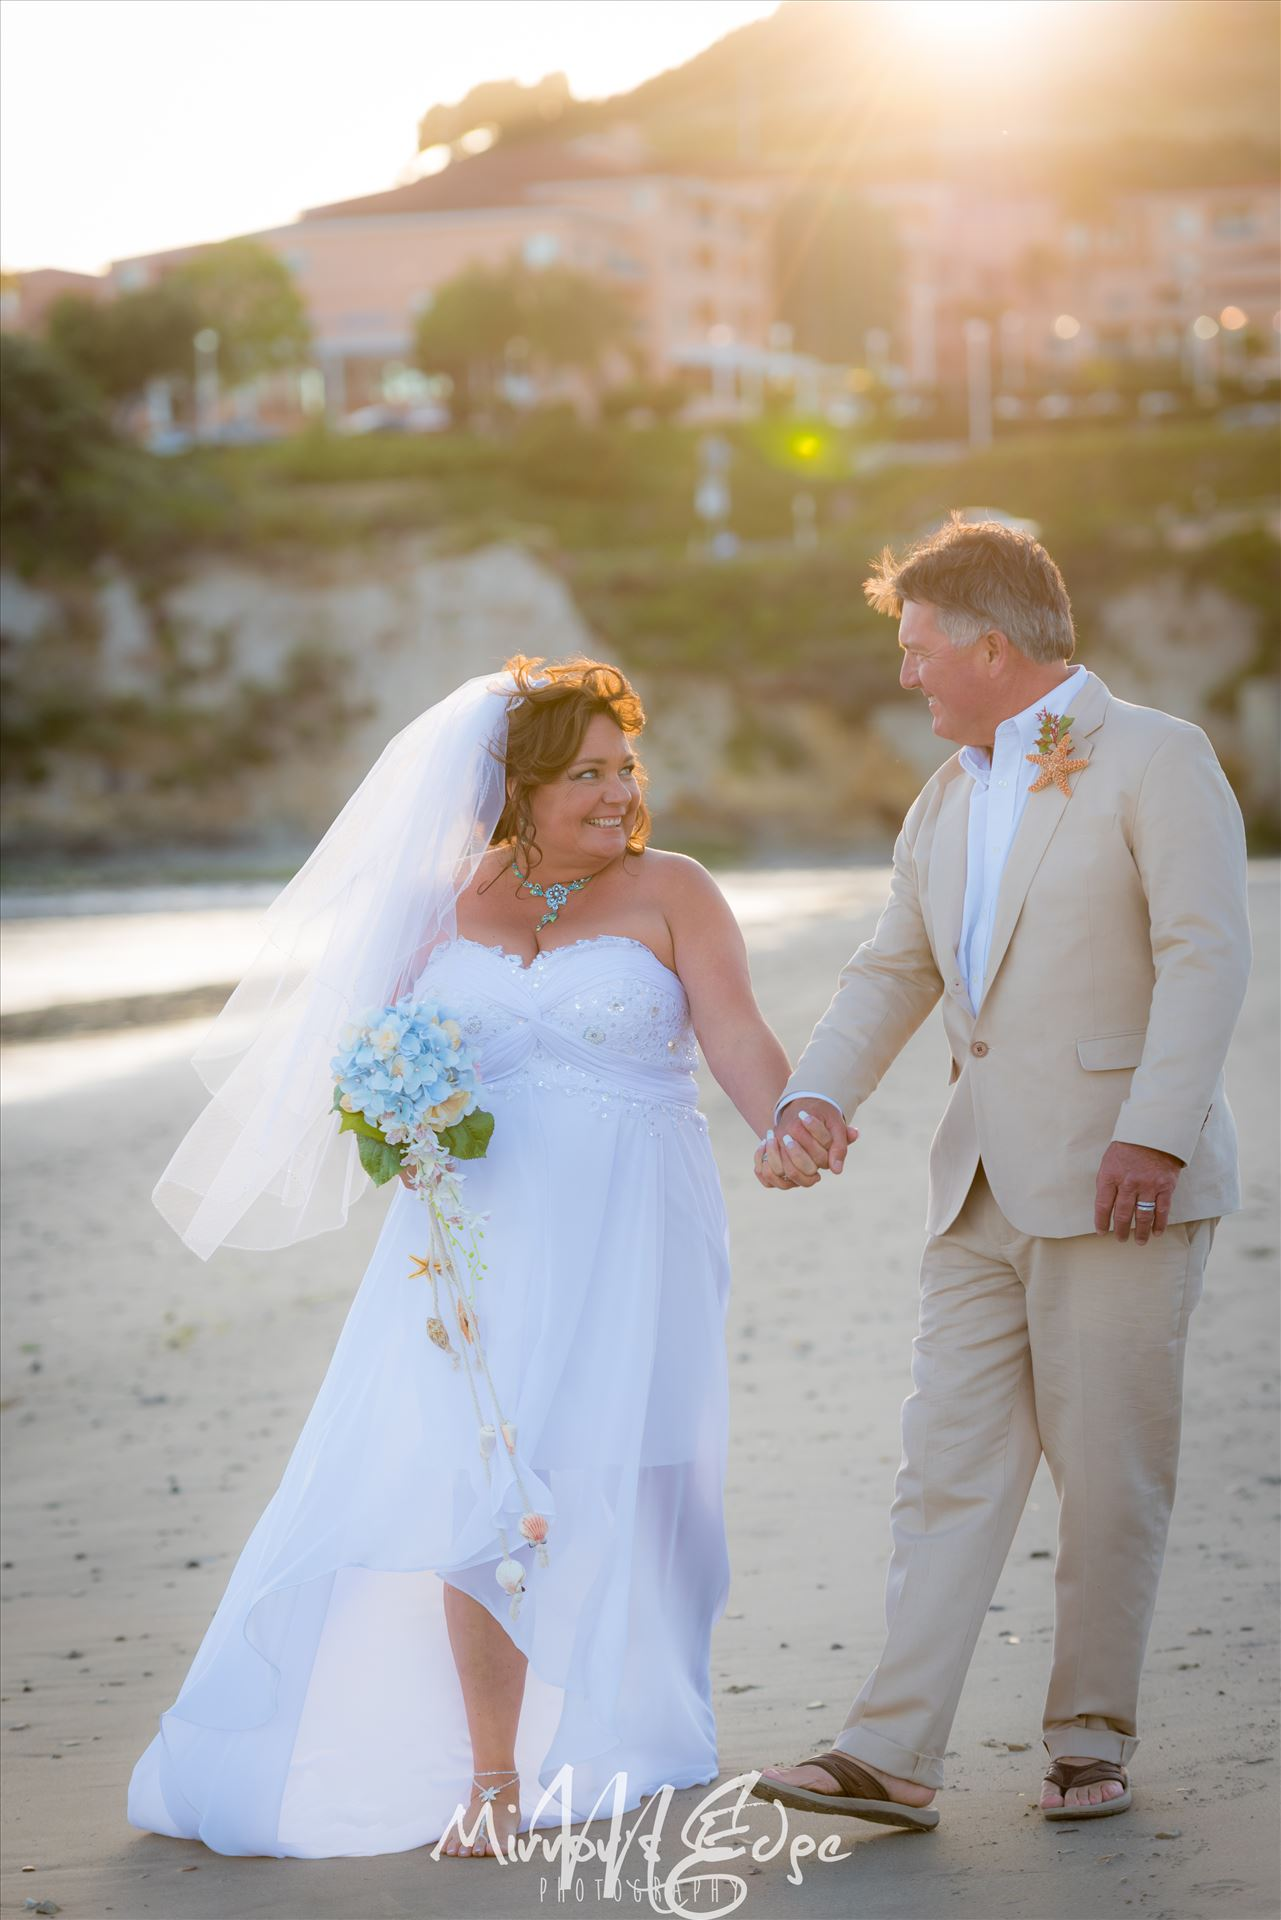 Port-7697.JPG - Beautiful and sweet wedding photography by the sea.  Ocean front ceremony at the Avila Lighthouse Suites on Avila Beach, California by Sarah Williams